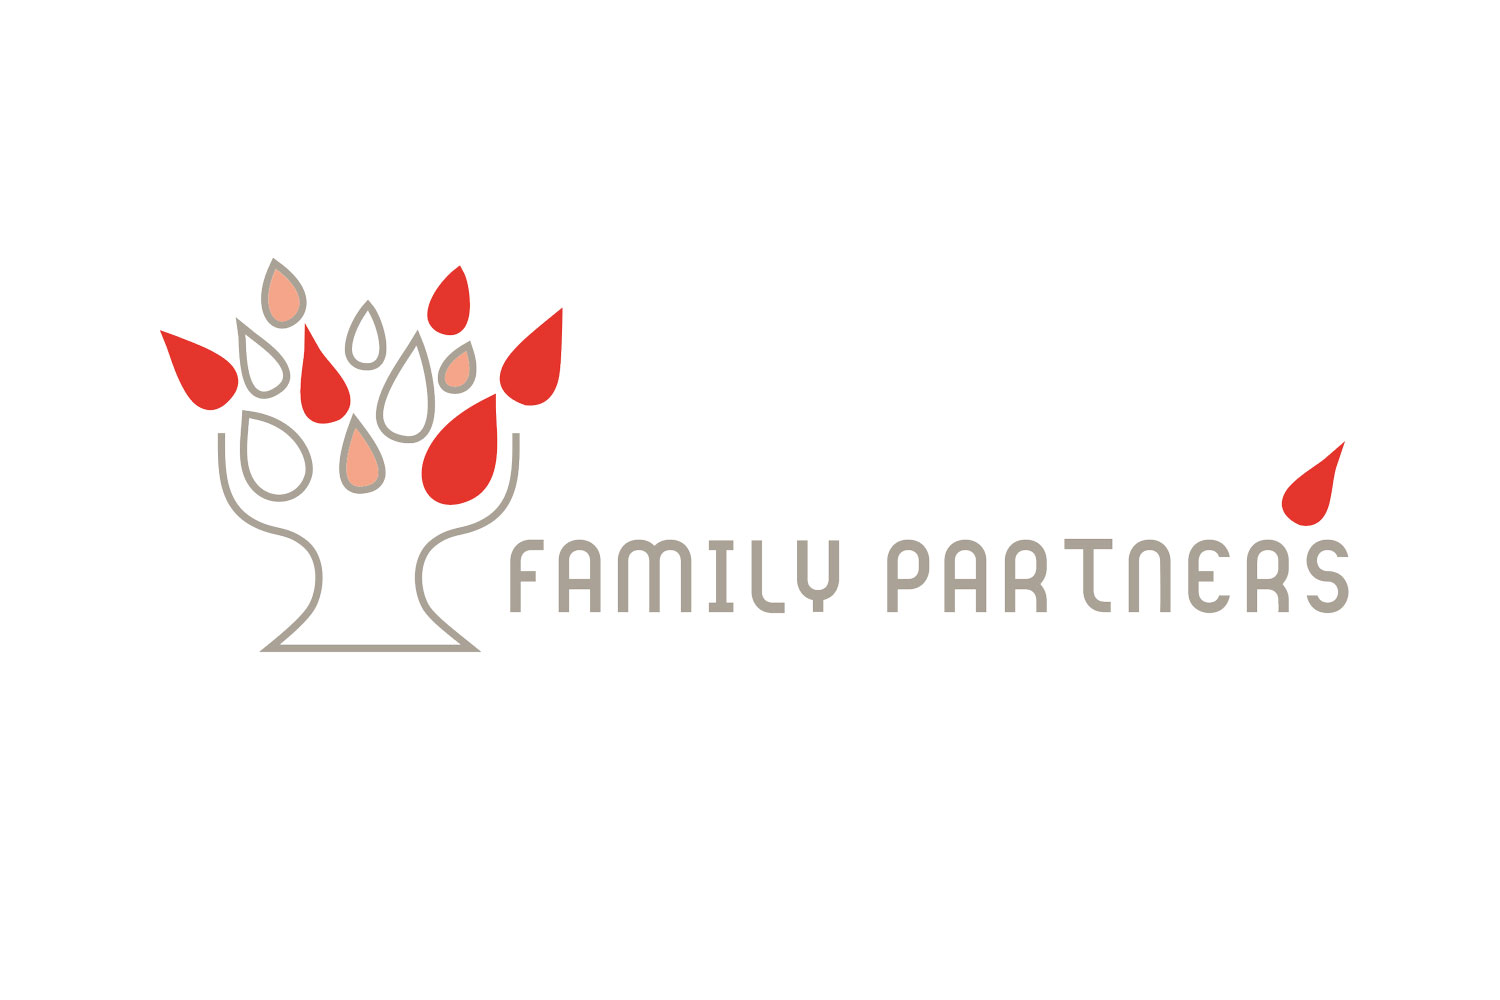 2_crabgraphic_logo_Family_Partners